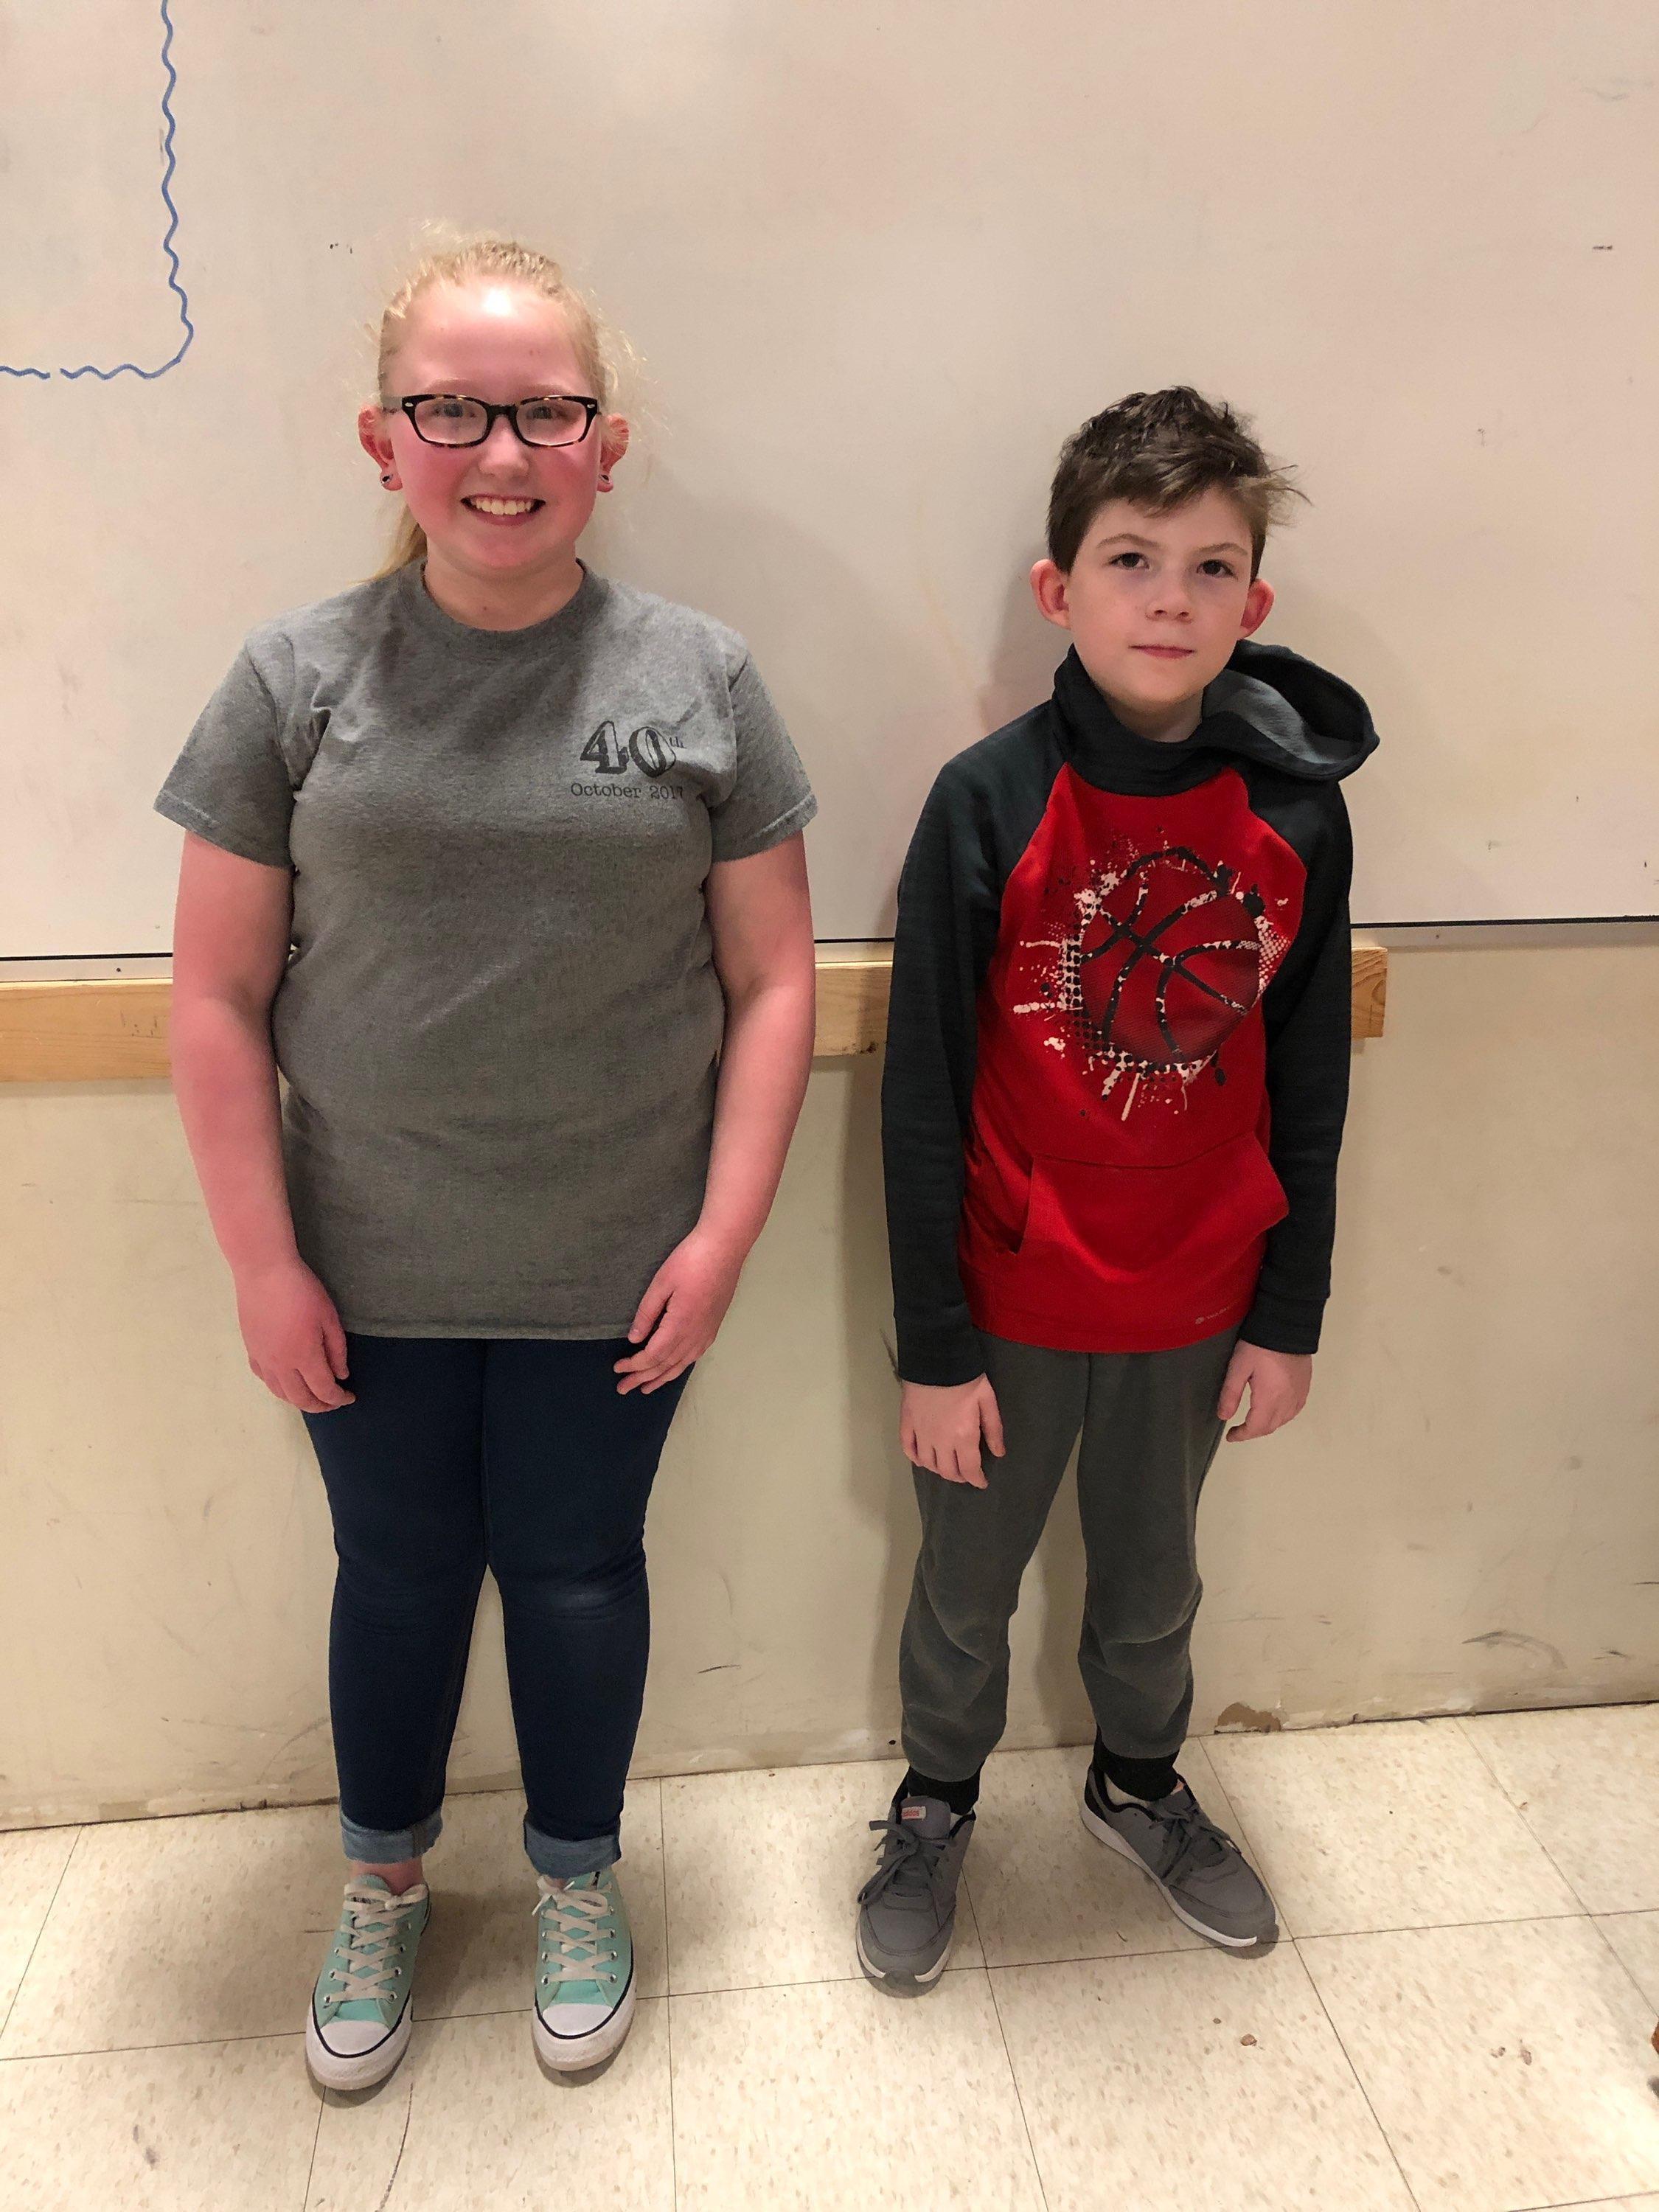 Emma on the left was the MCES spelling bee winner and Turner on the right the MCES runner-up